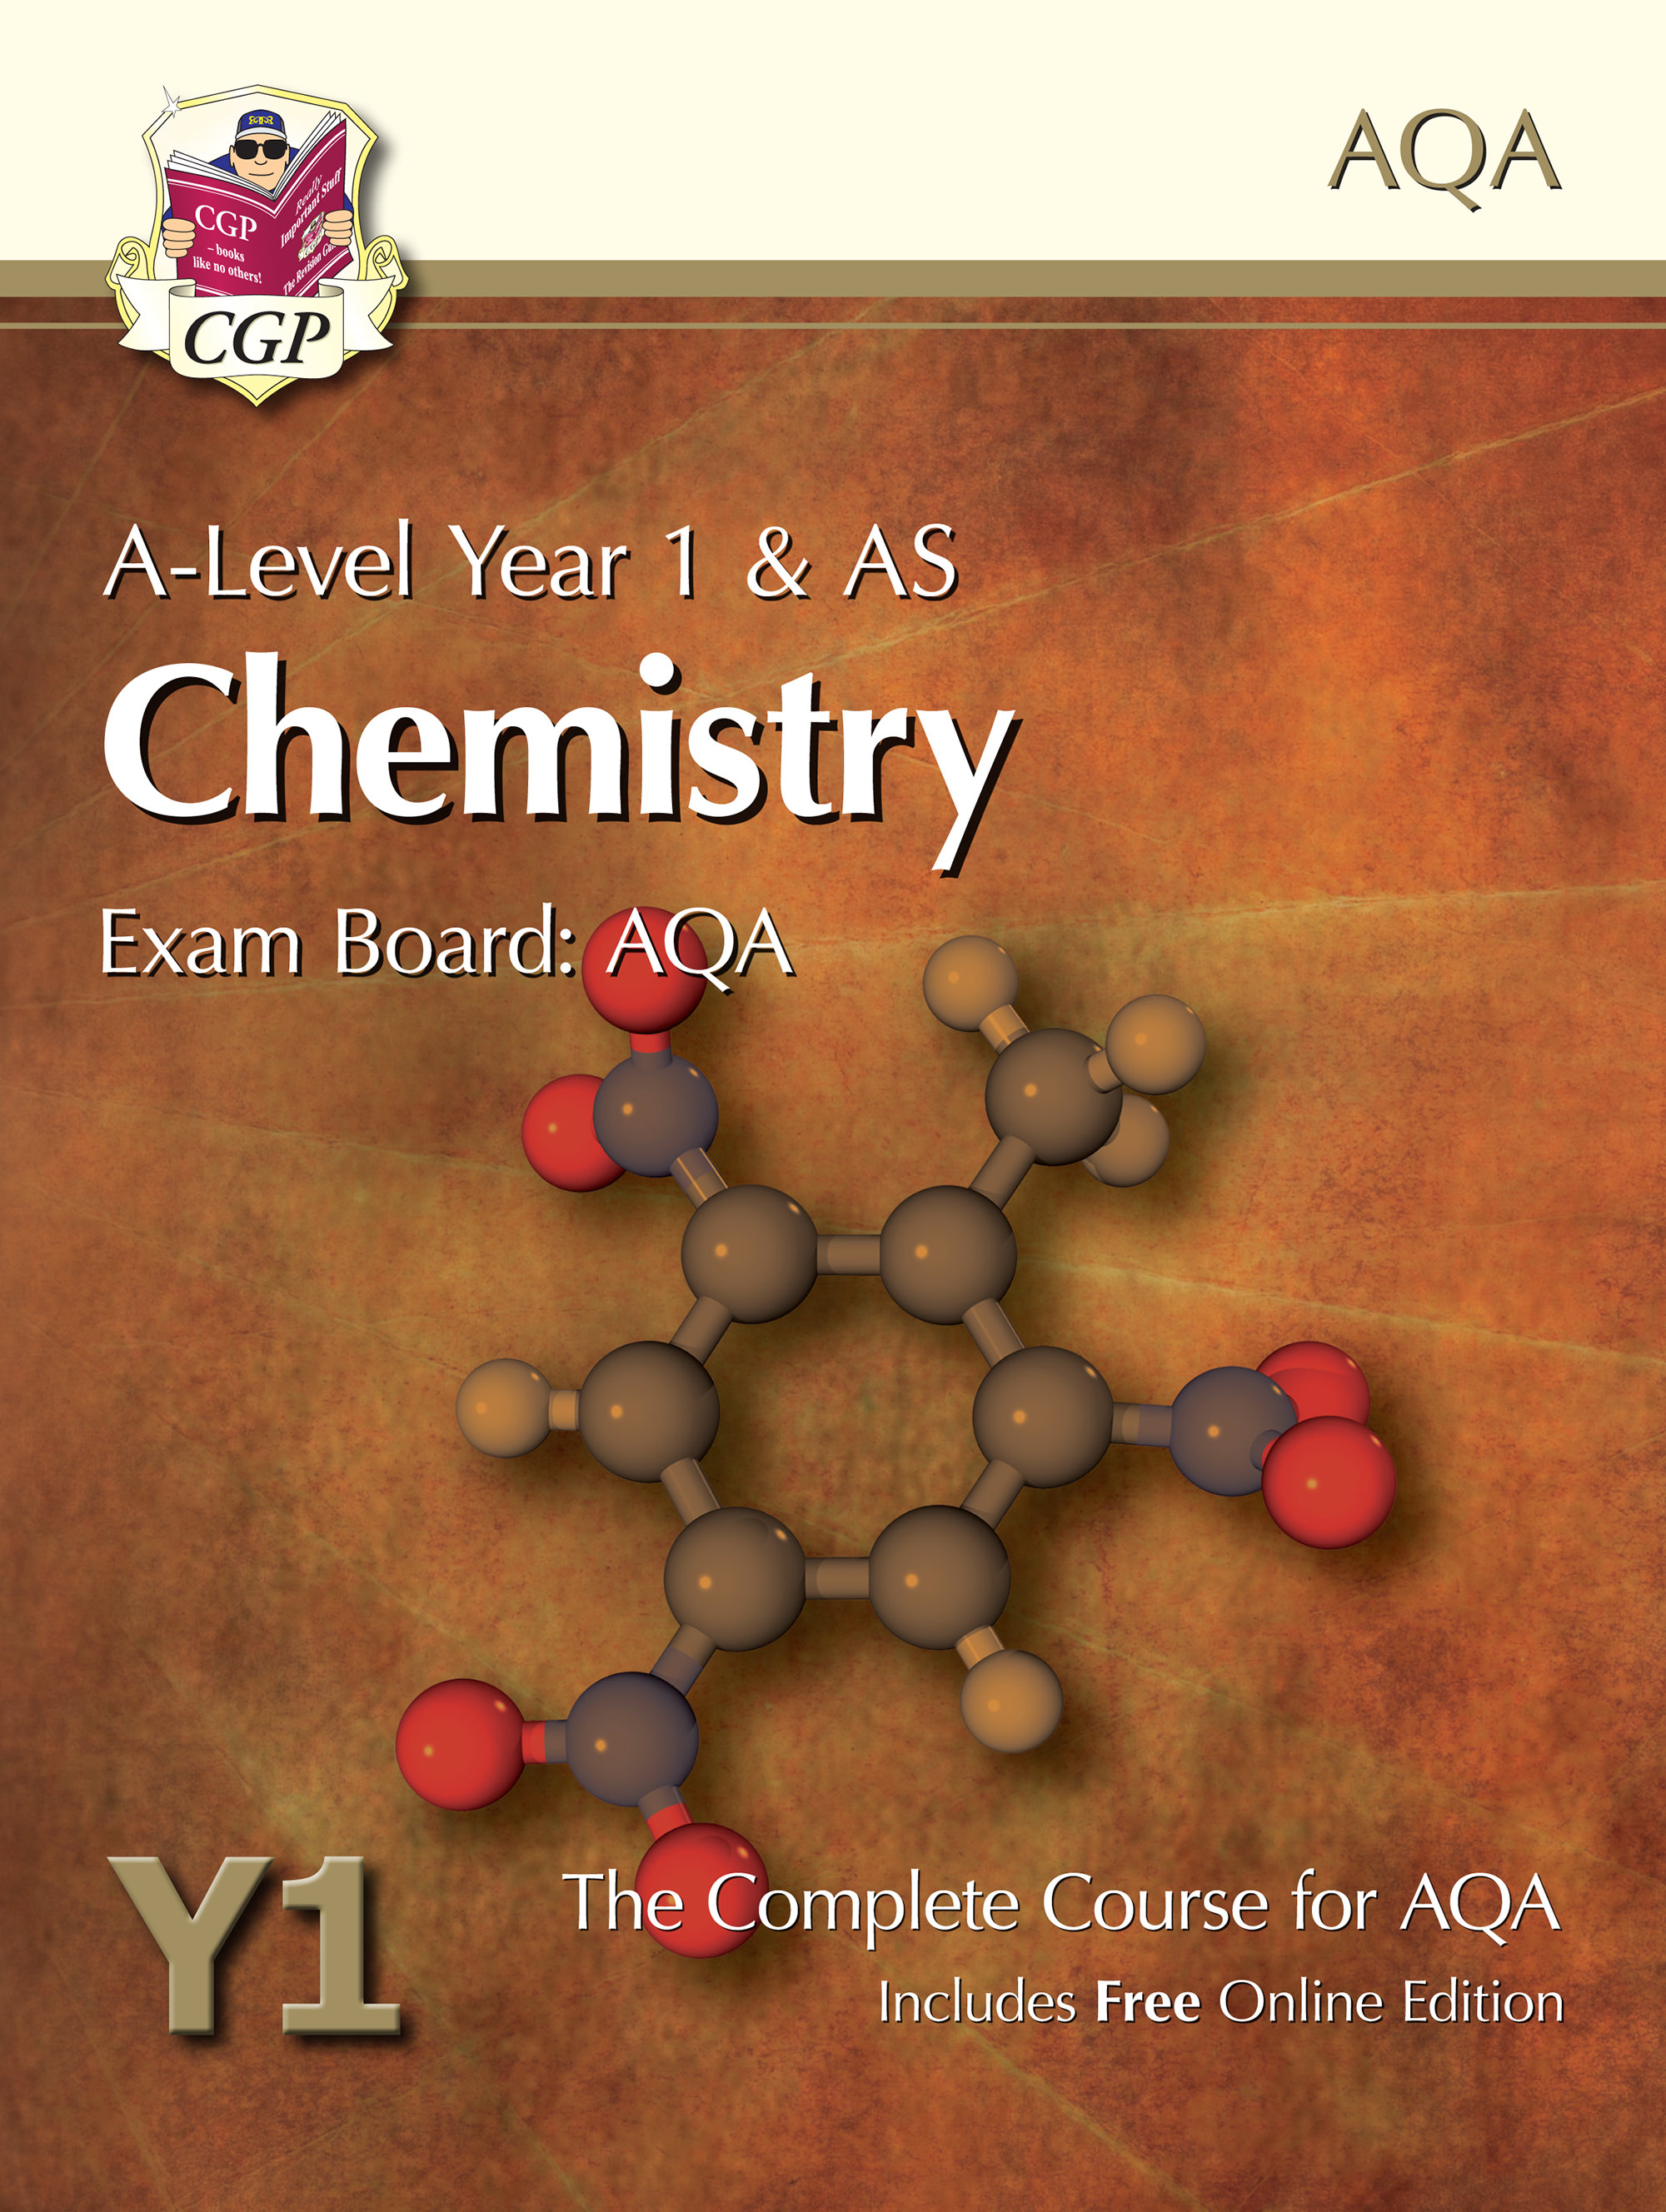 CATB52 - A-Level Chemistry for AQA: Year 1 & AS Student Book with Online Edition